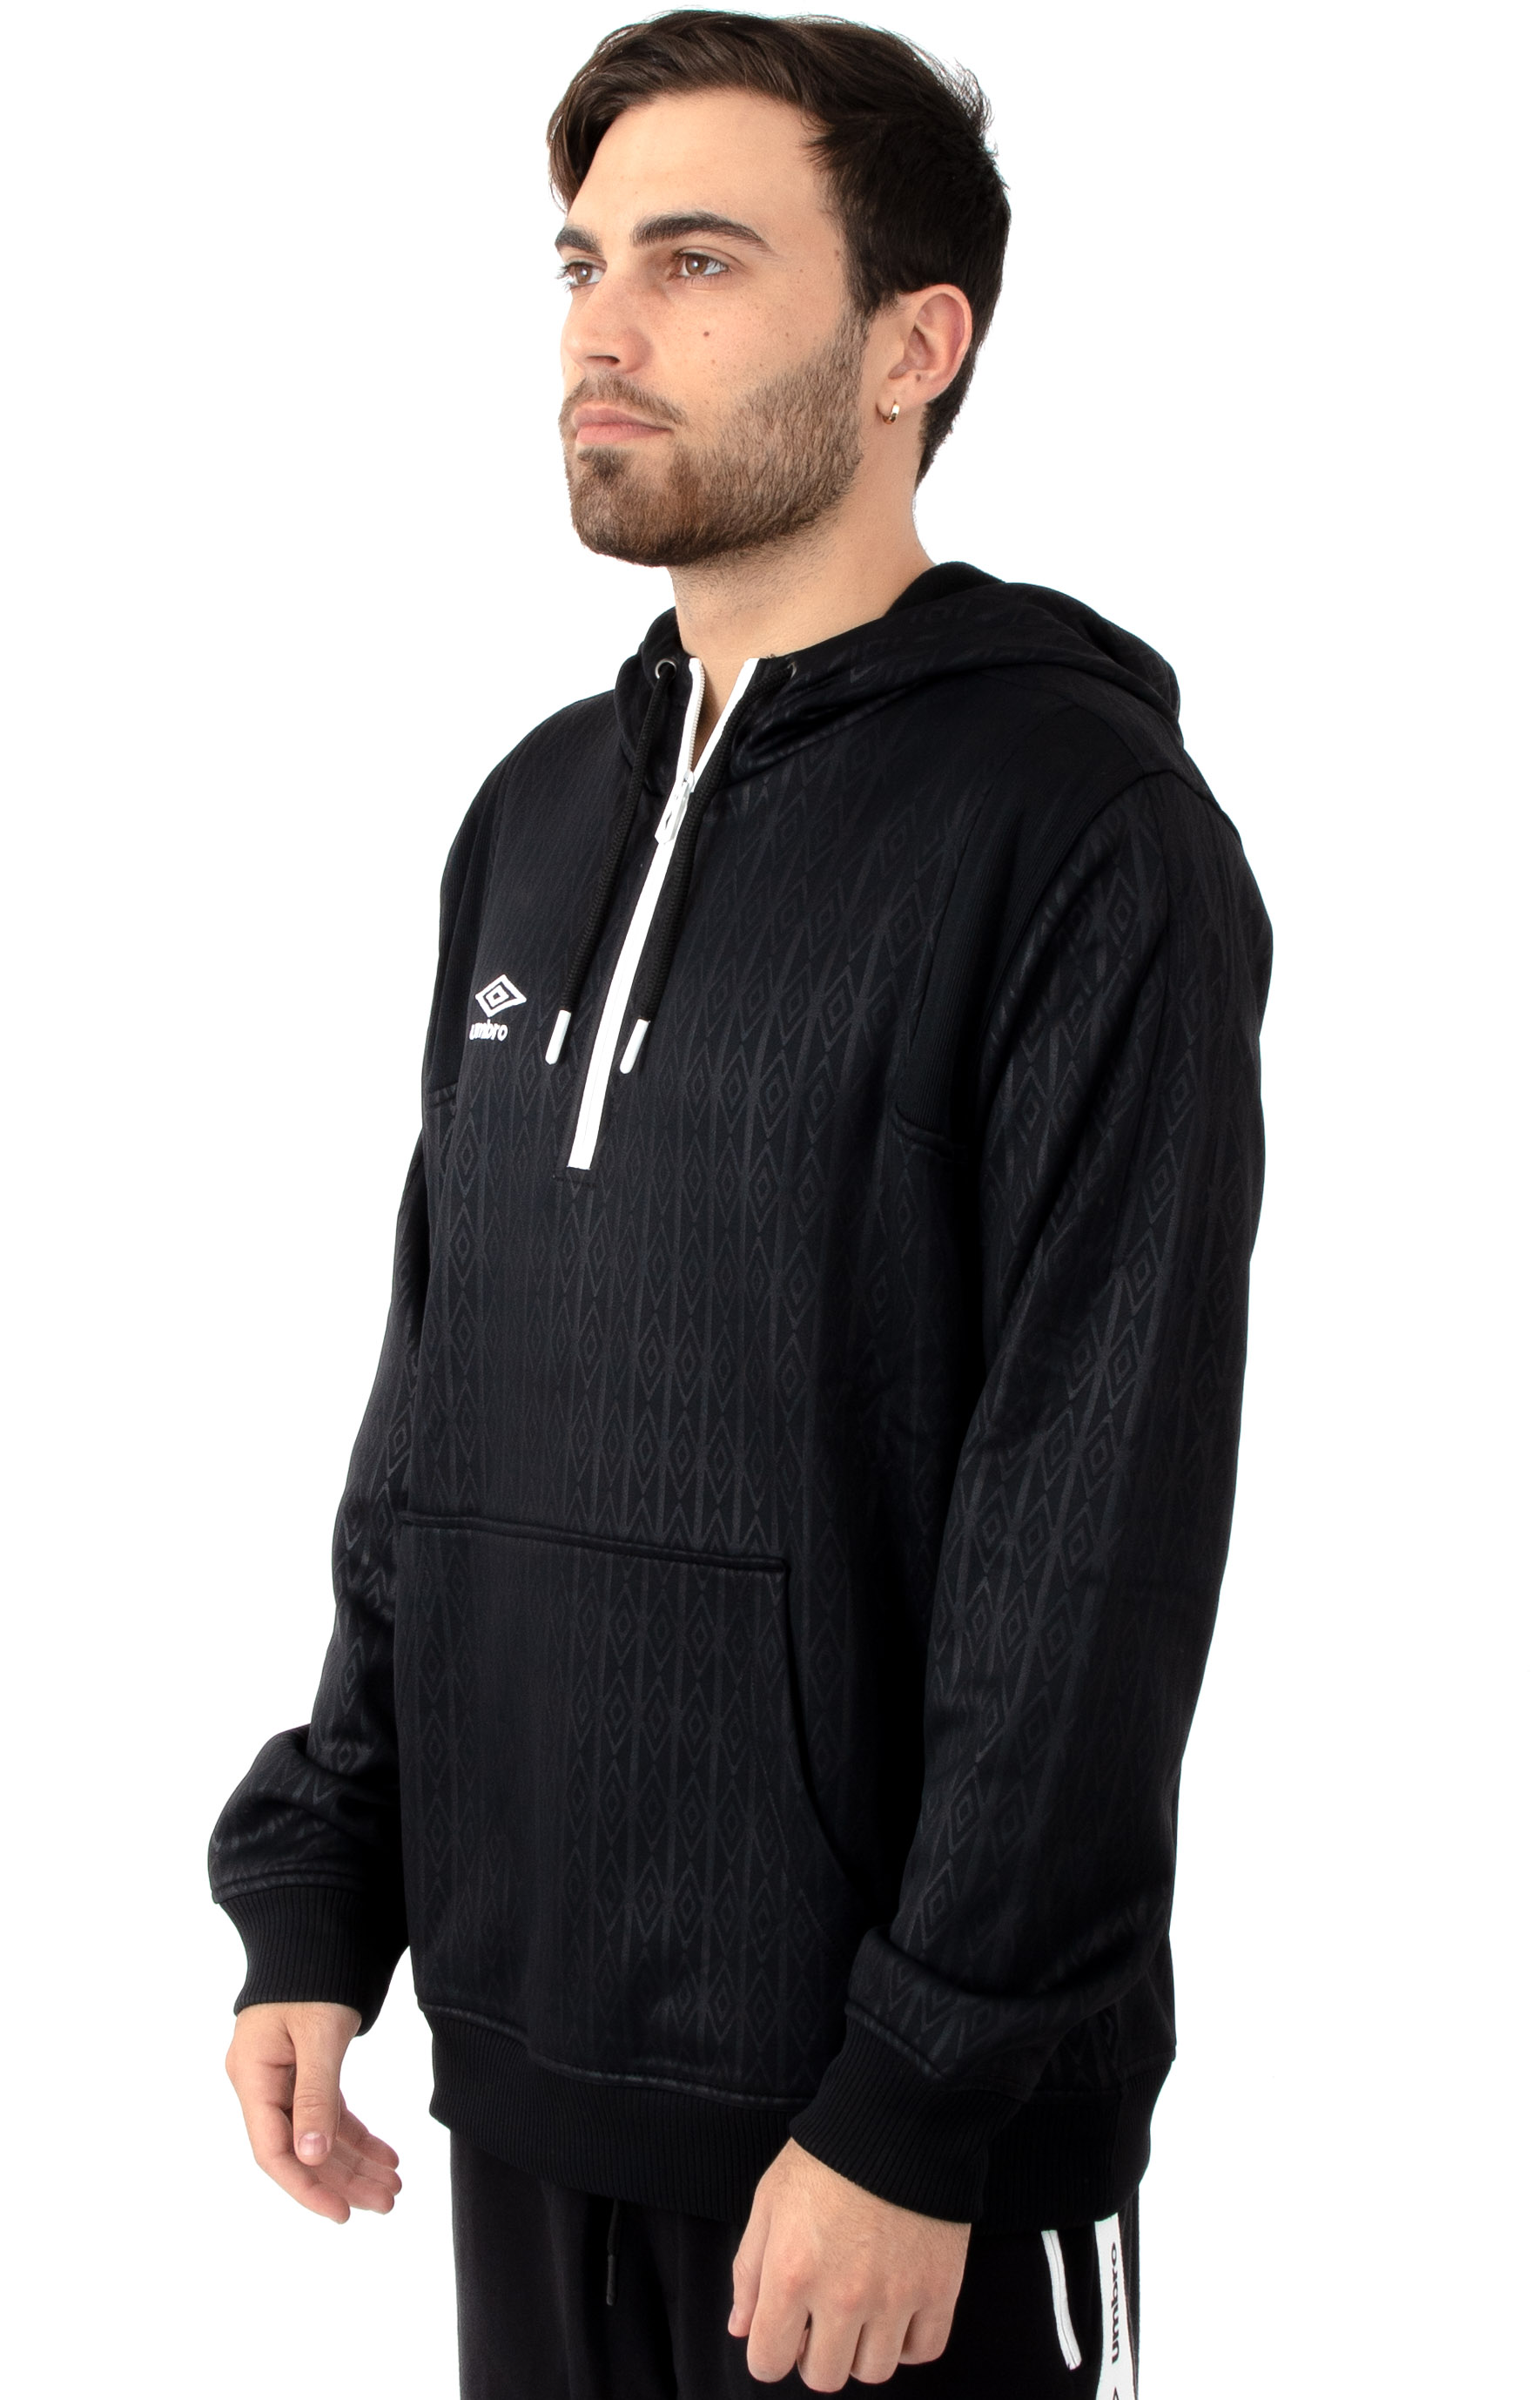 Goal Line Pullover Hoodie - Black/White 2